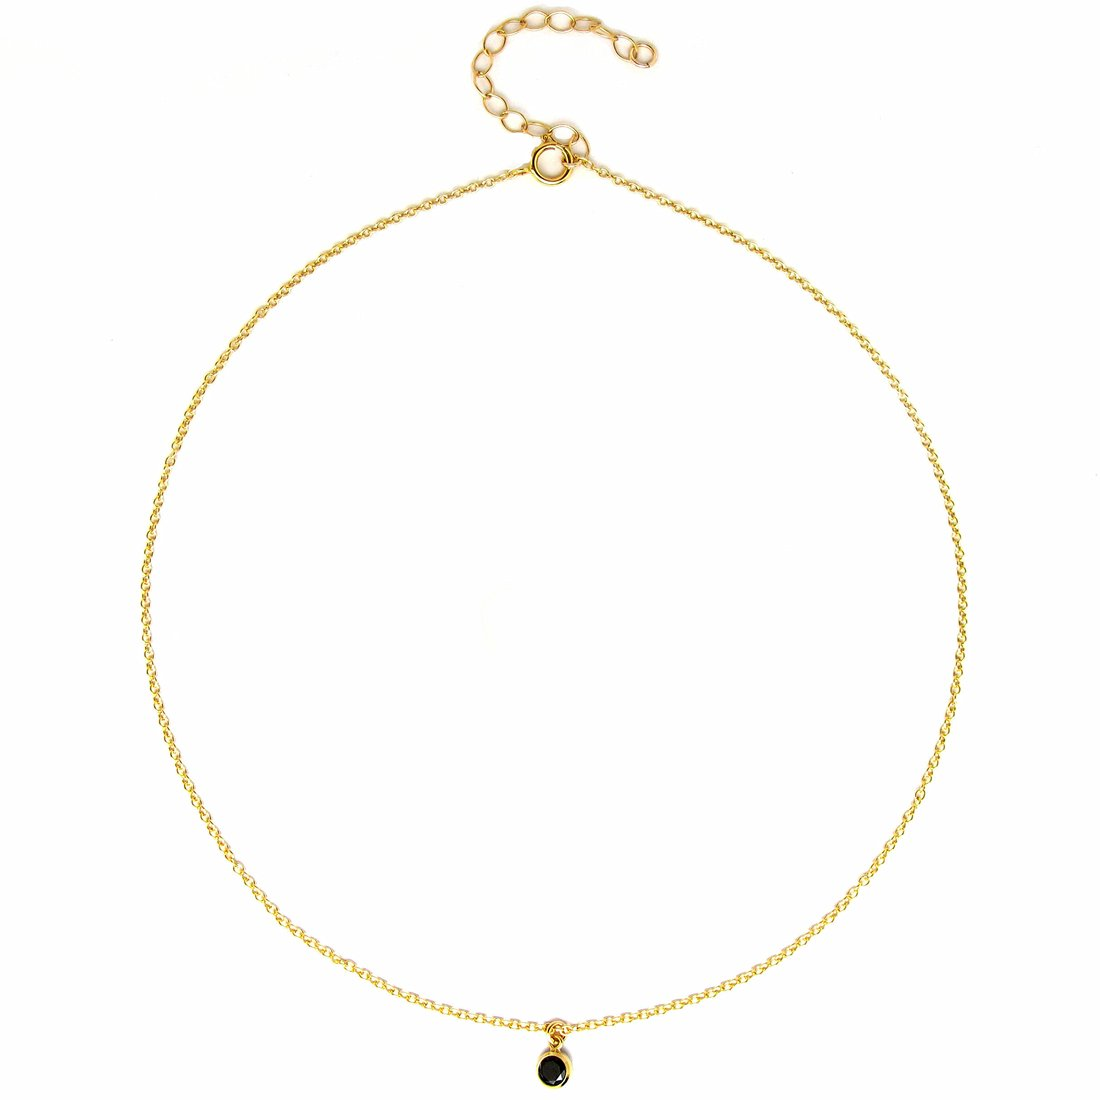 BENIQUE Dainty Necklace Choker for Women - Freshwater Cultured Pearl, Fine Chain for Layering, AAA Cubic Zirconia Drop, 14K Gold Filled, Made in USA, 13''+3'' Adjustable Ext. (Black CZ Drop) by BENIQUE